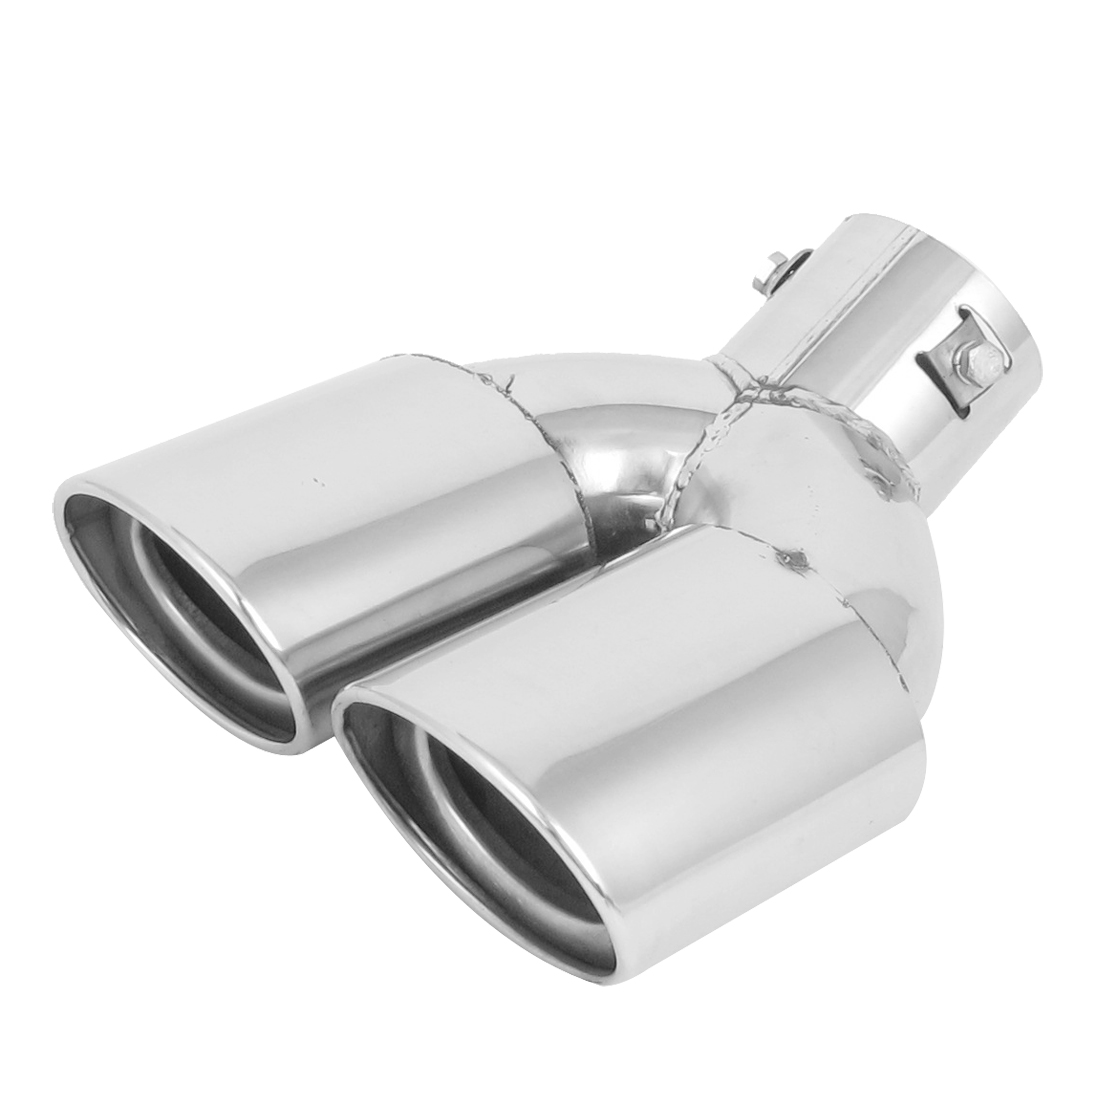 60mm Inlet Dia Double Outlet Siler Tone Stainless Steel Car Exhaust Muffler Pipe Tail Tip